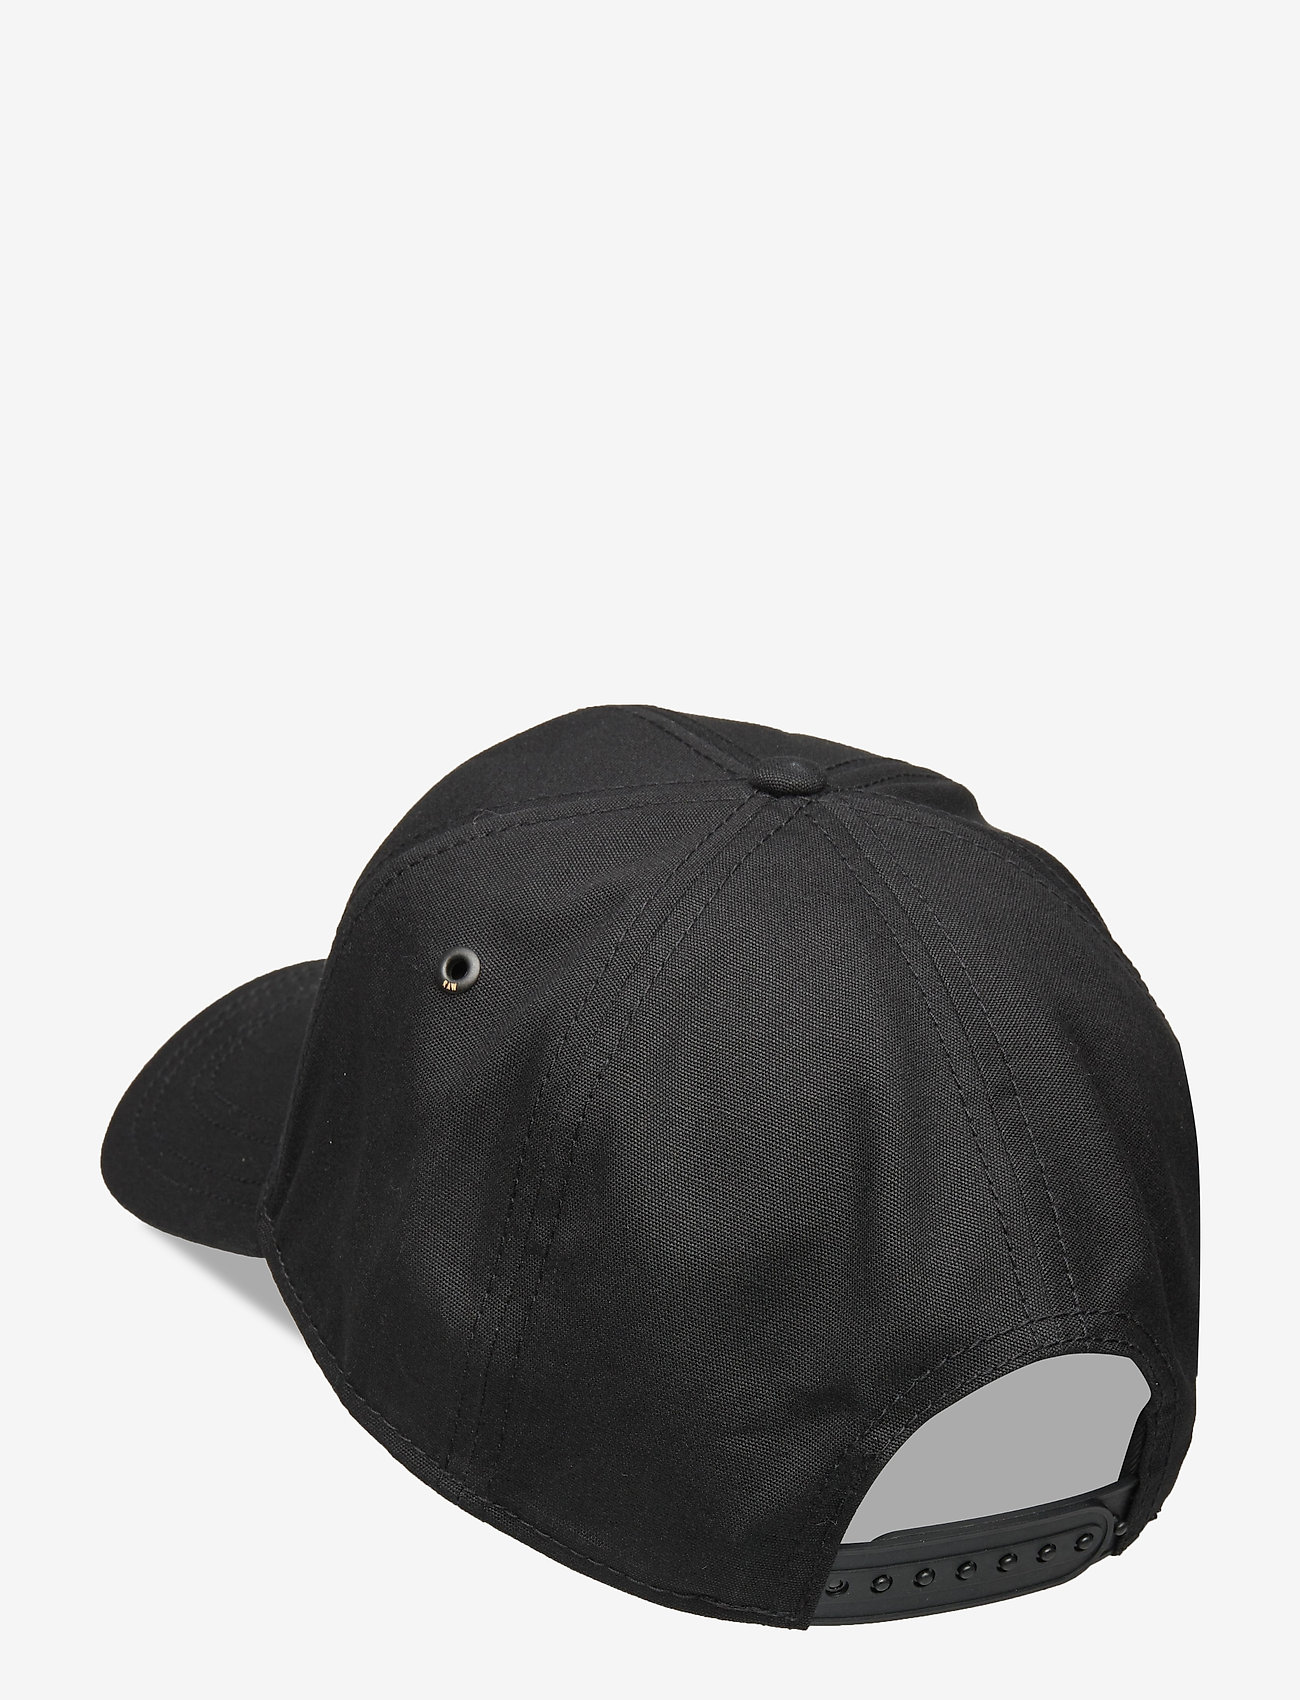 G-star RAW - Originals baseball cap - petten - dk black - 1